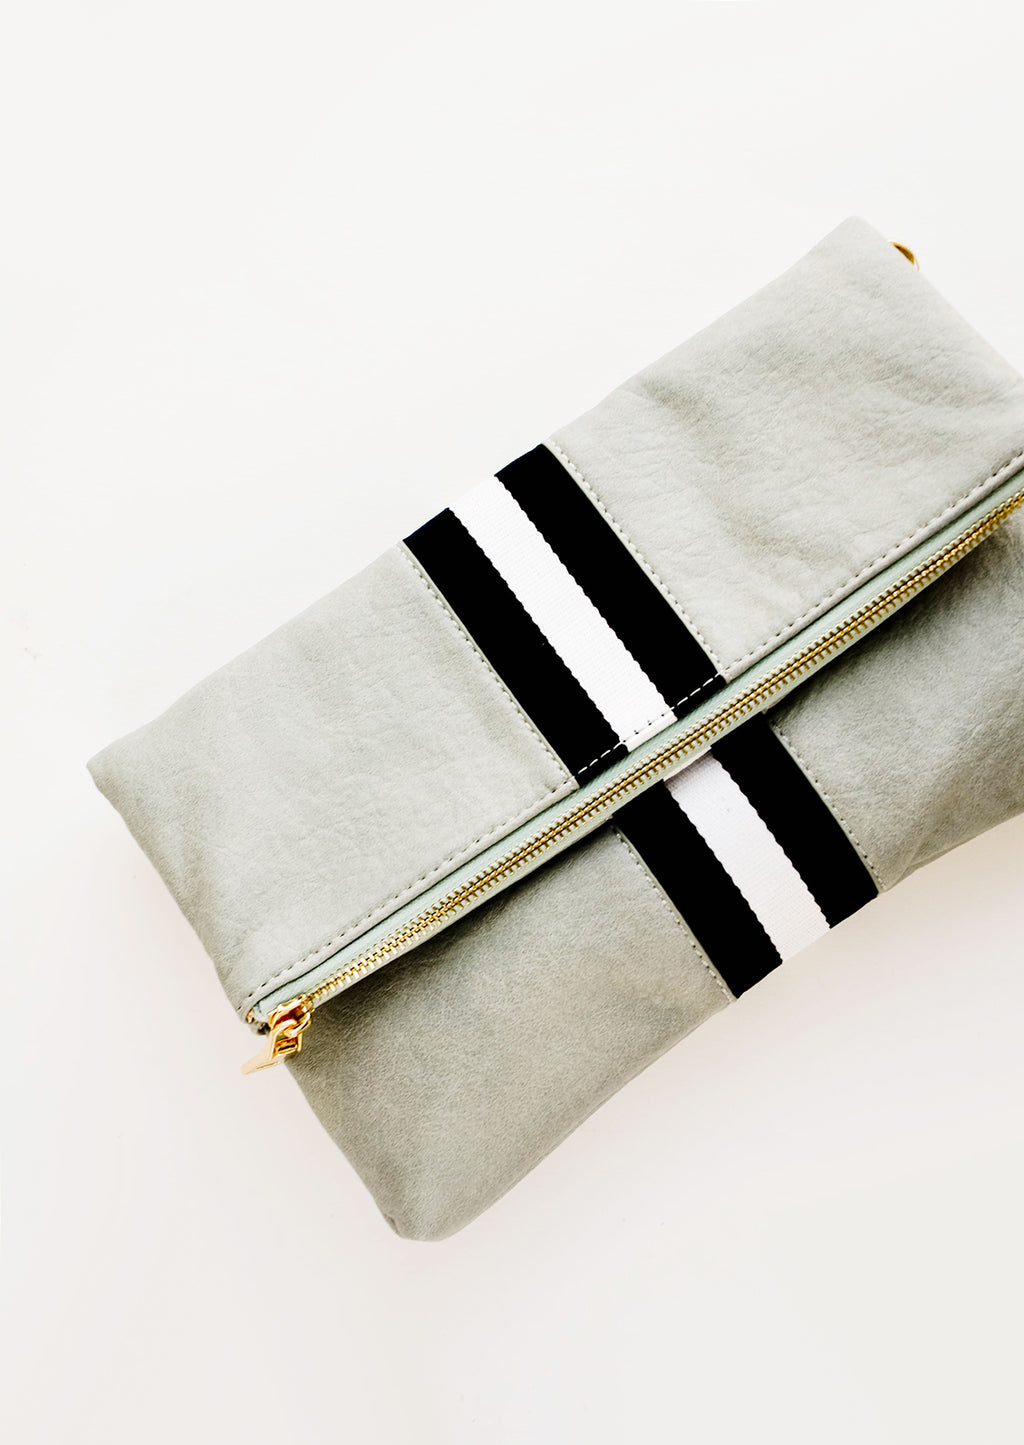 Mint / Black: A mint green fold over clutch with a trio of black and white vertical stripes.